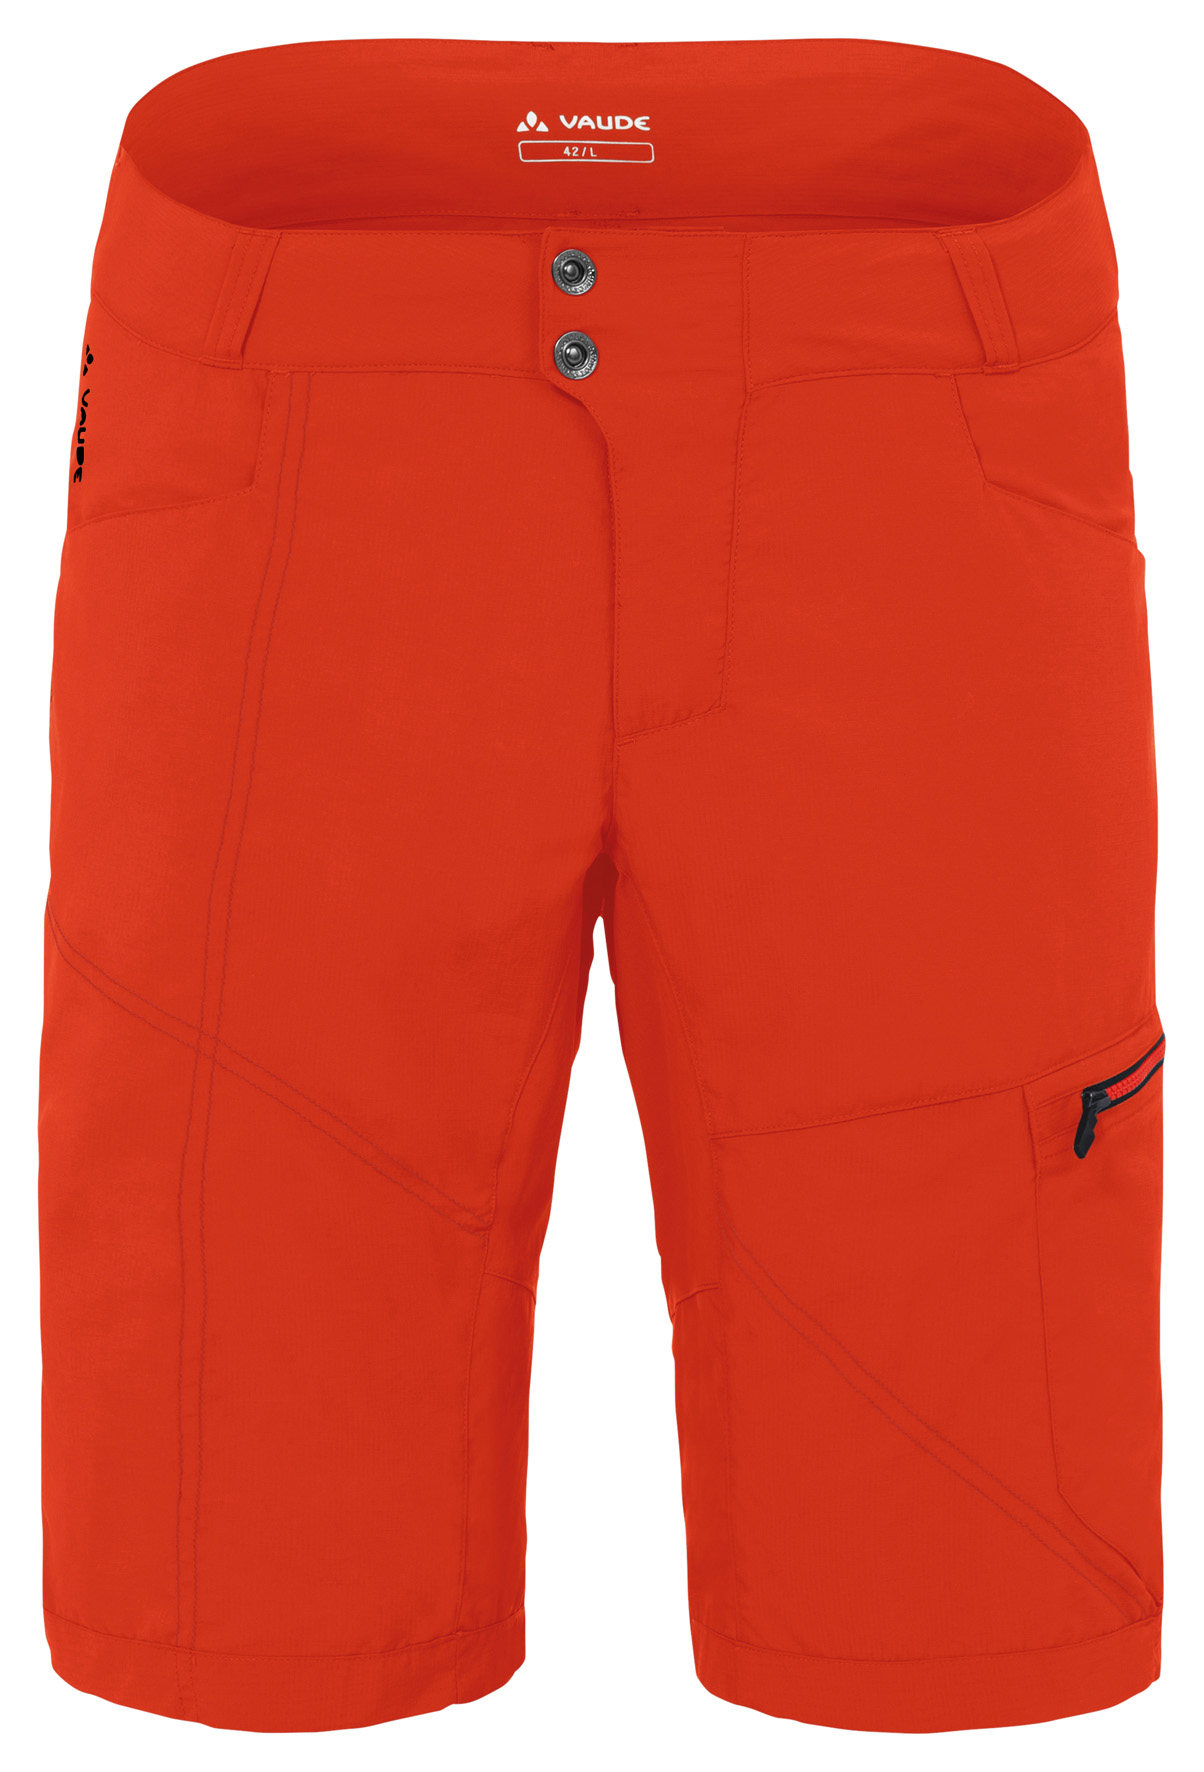 Men´s Tamaro Shorts glowing red Größe L - schneider-sports